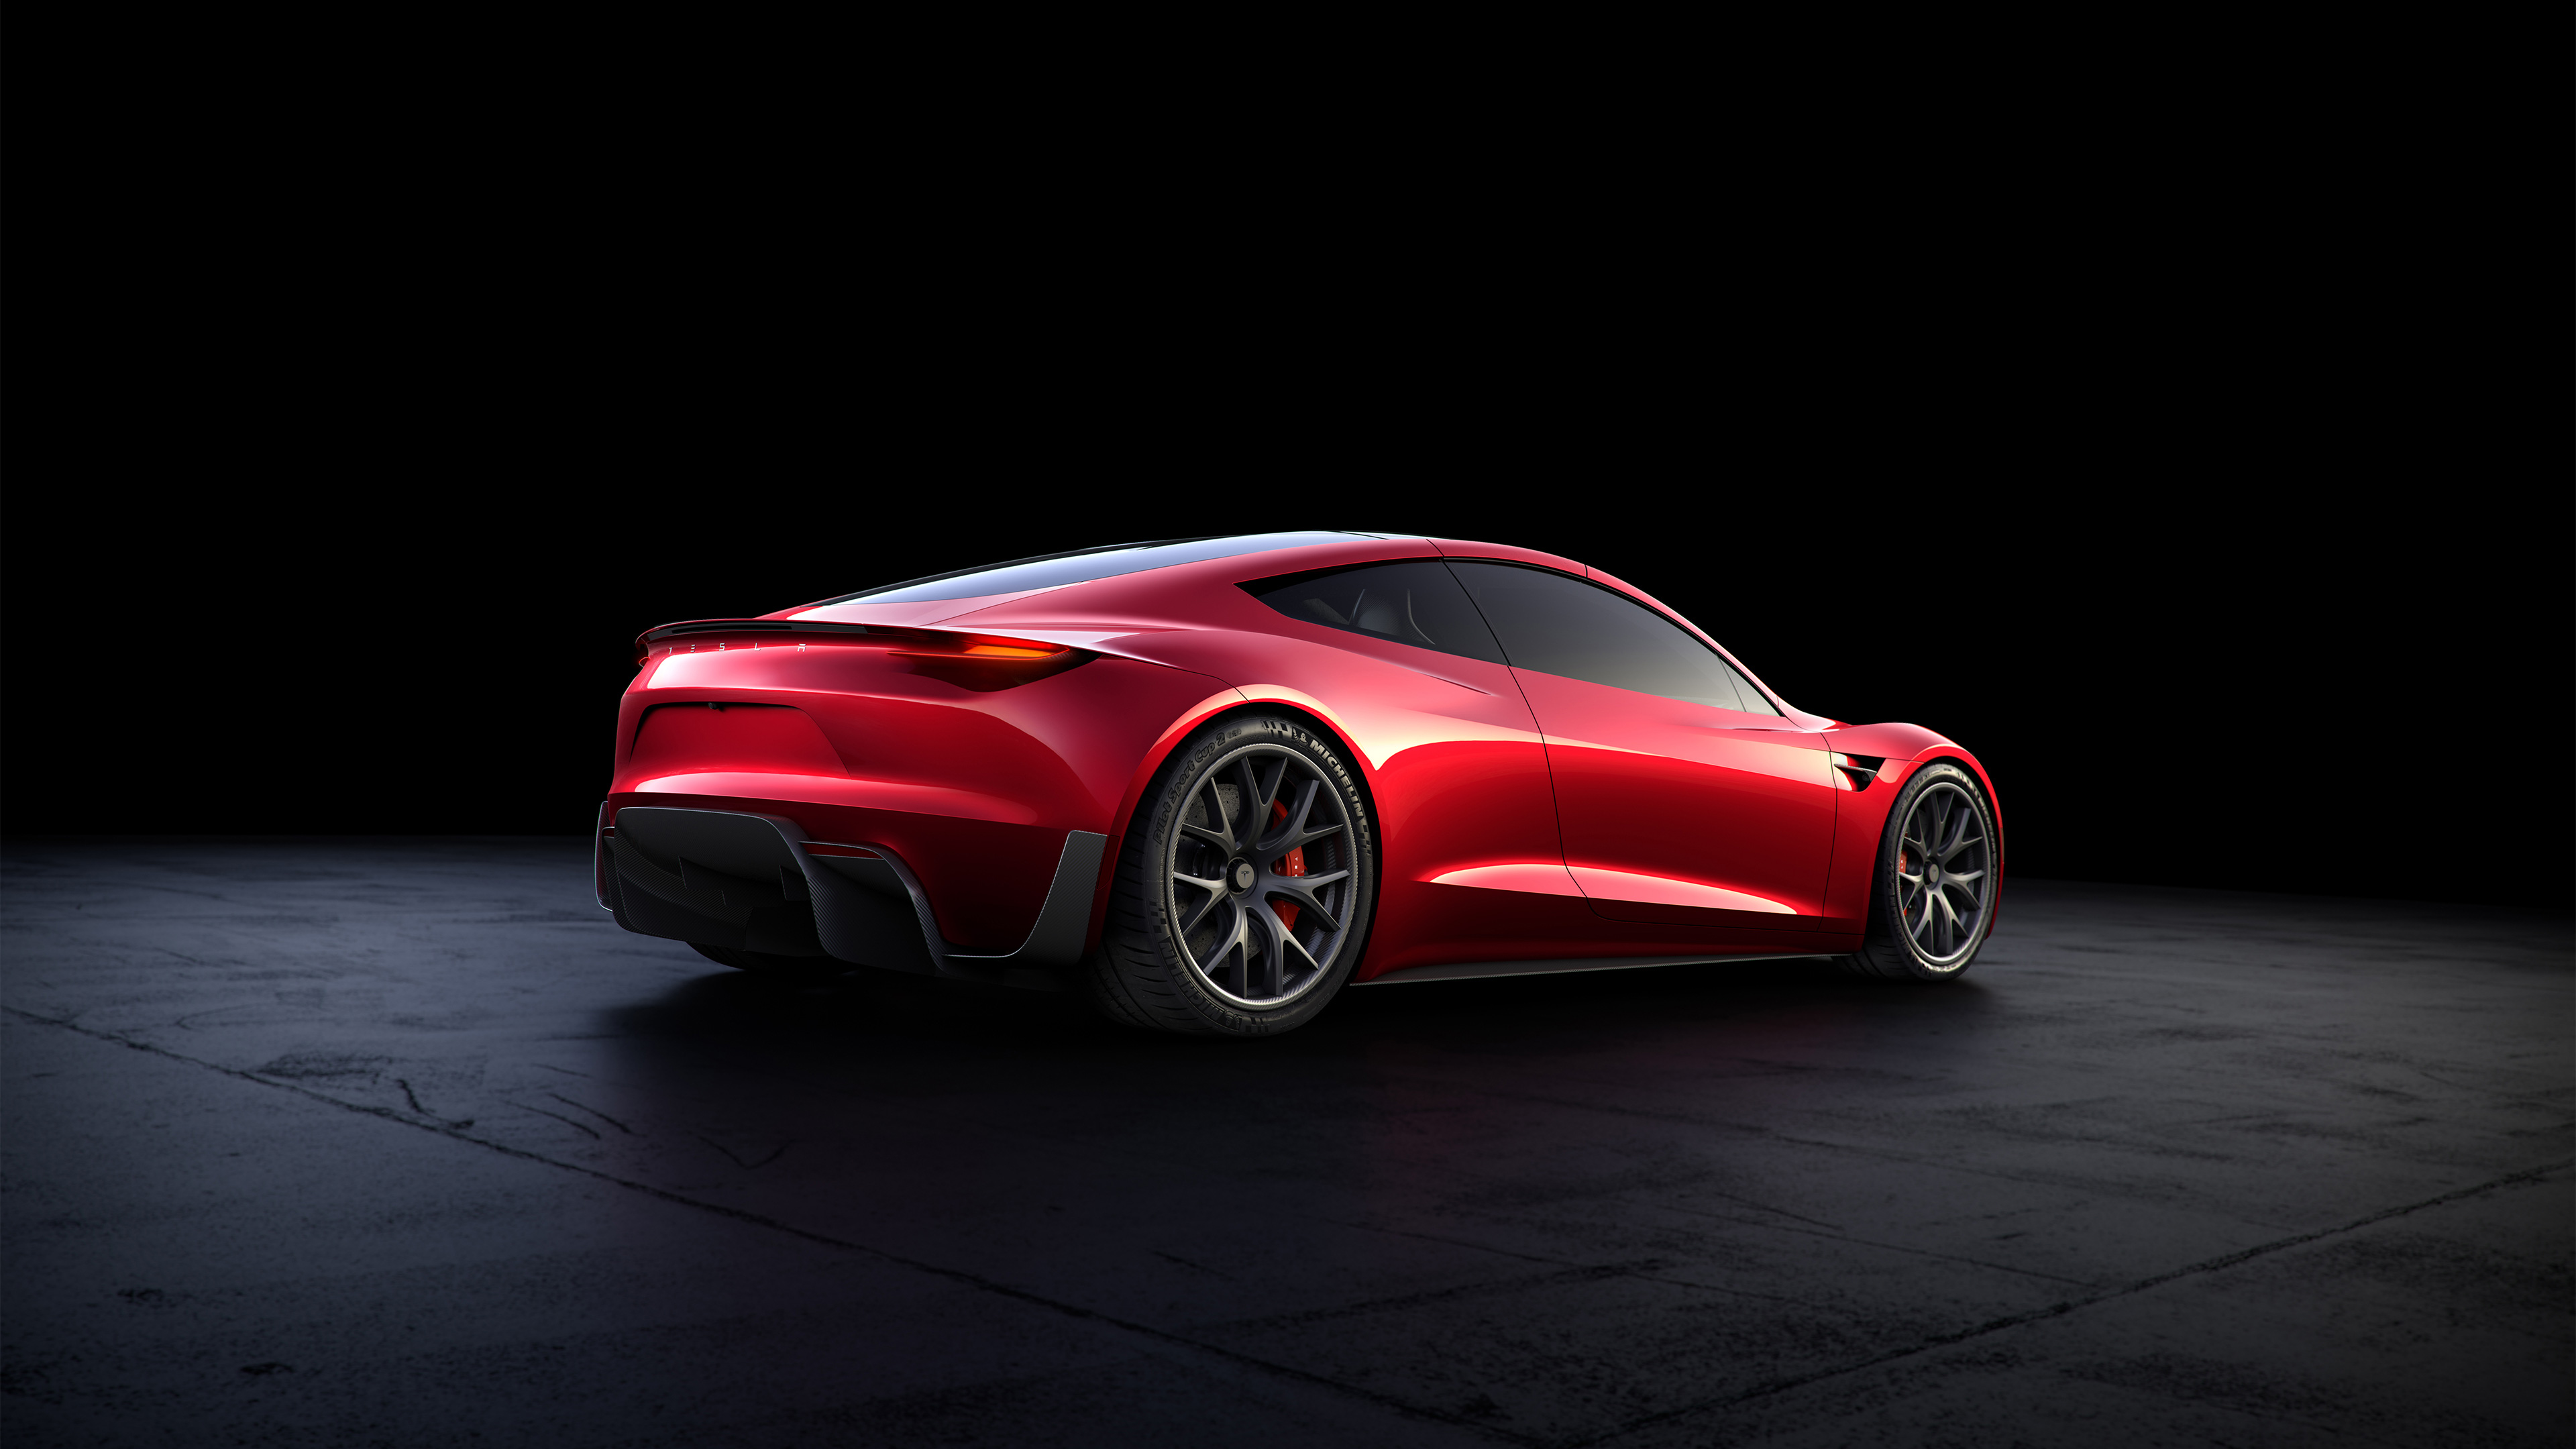 tesla roadster rear look 1539108009 - Tesla Roadster Rear Look - tesla wallpapers, tesla roadster wallpapers, hd-wallpapers, electric cars wallpapers, 4k-wallpapers, 2018 cars wallpapers